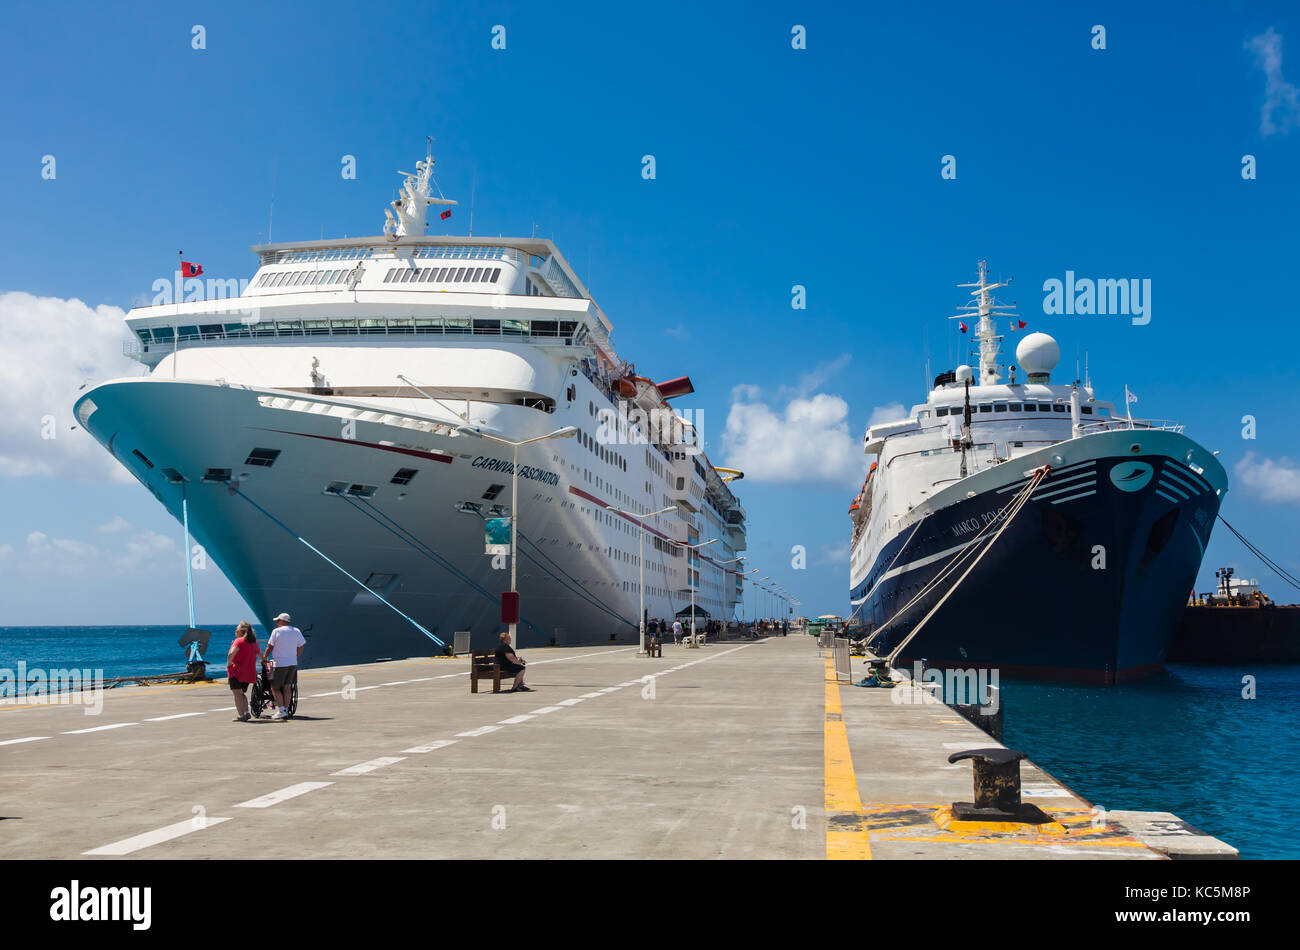 Carnival Fascination & Marco Polo docked in Pilipsburg, St Maarten - Stock Image